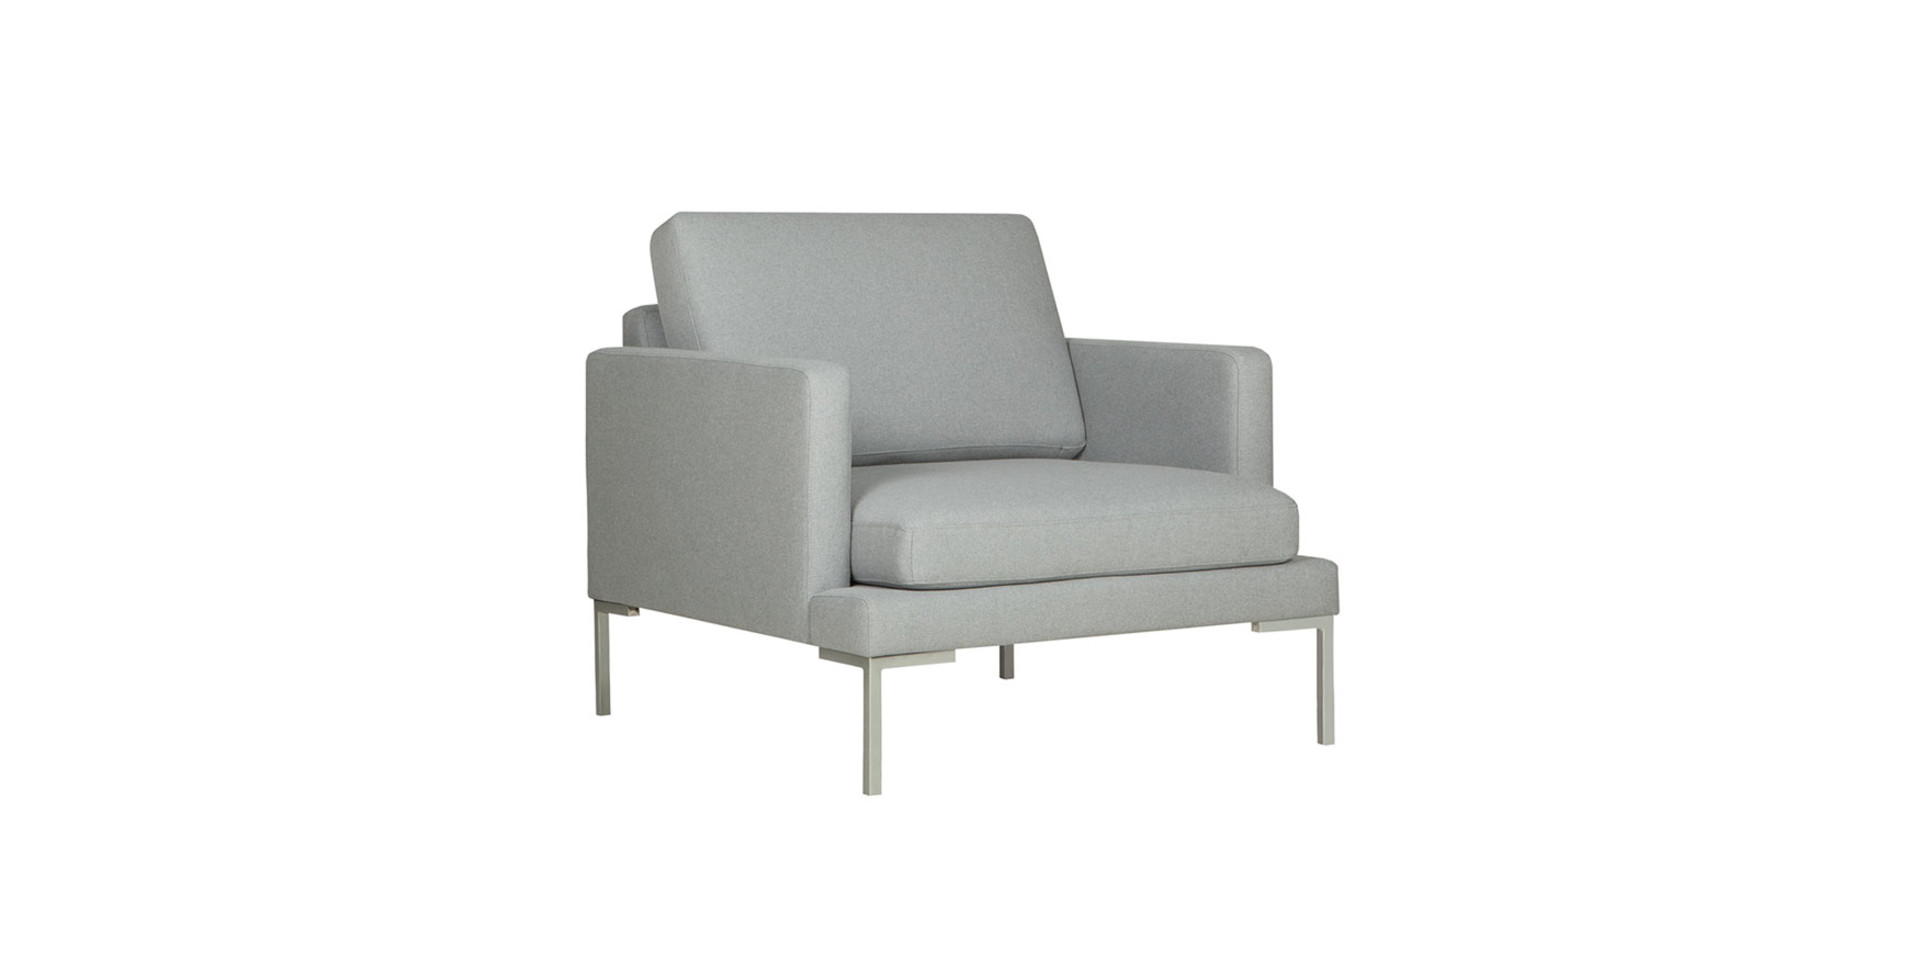 sits-ludvig-fauteuil-armchair_luis21_light_grey_2